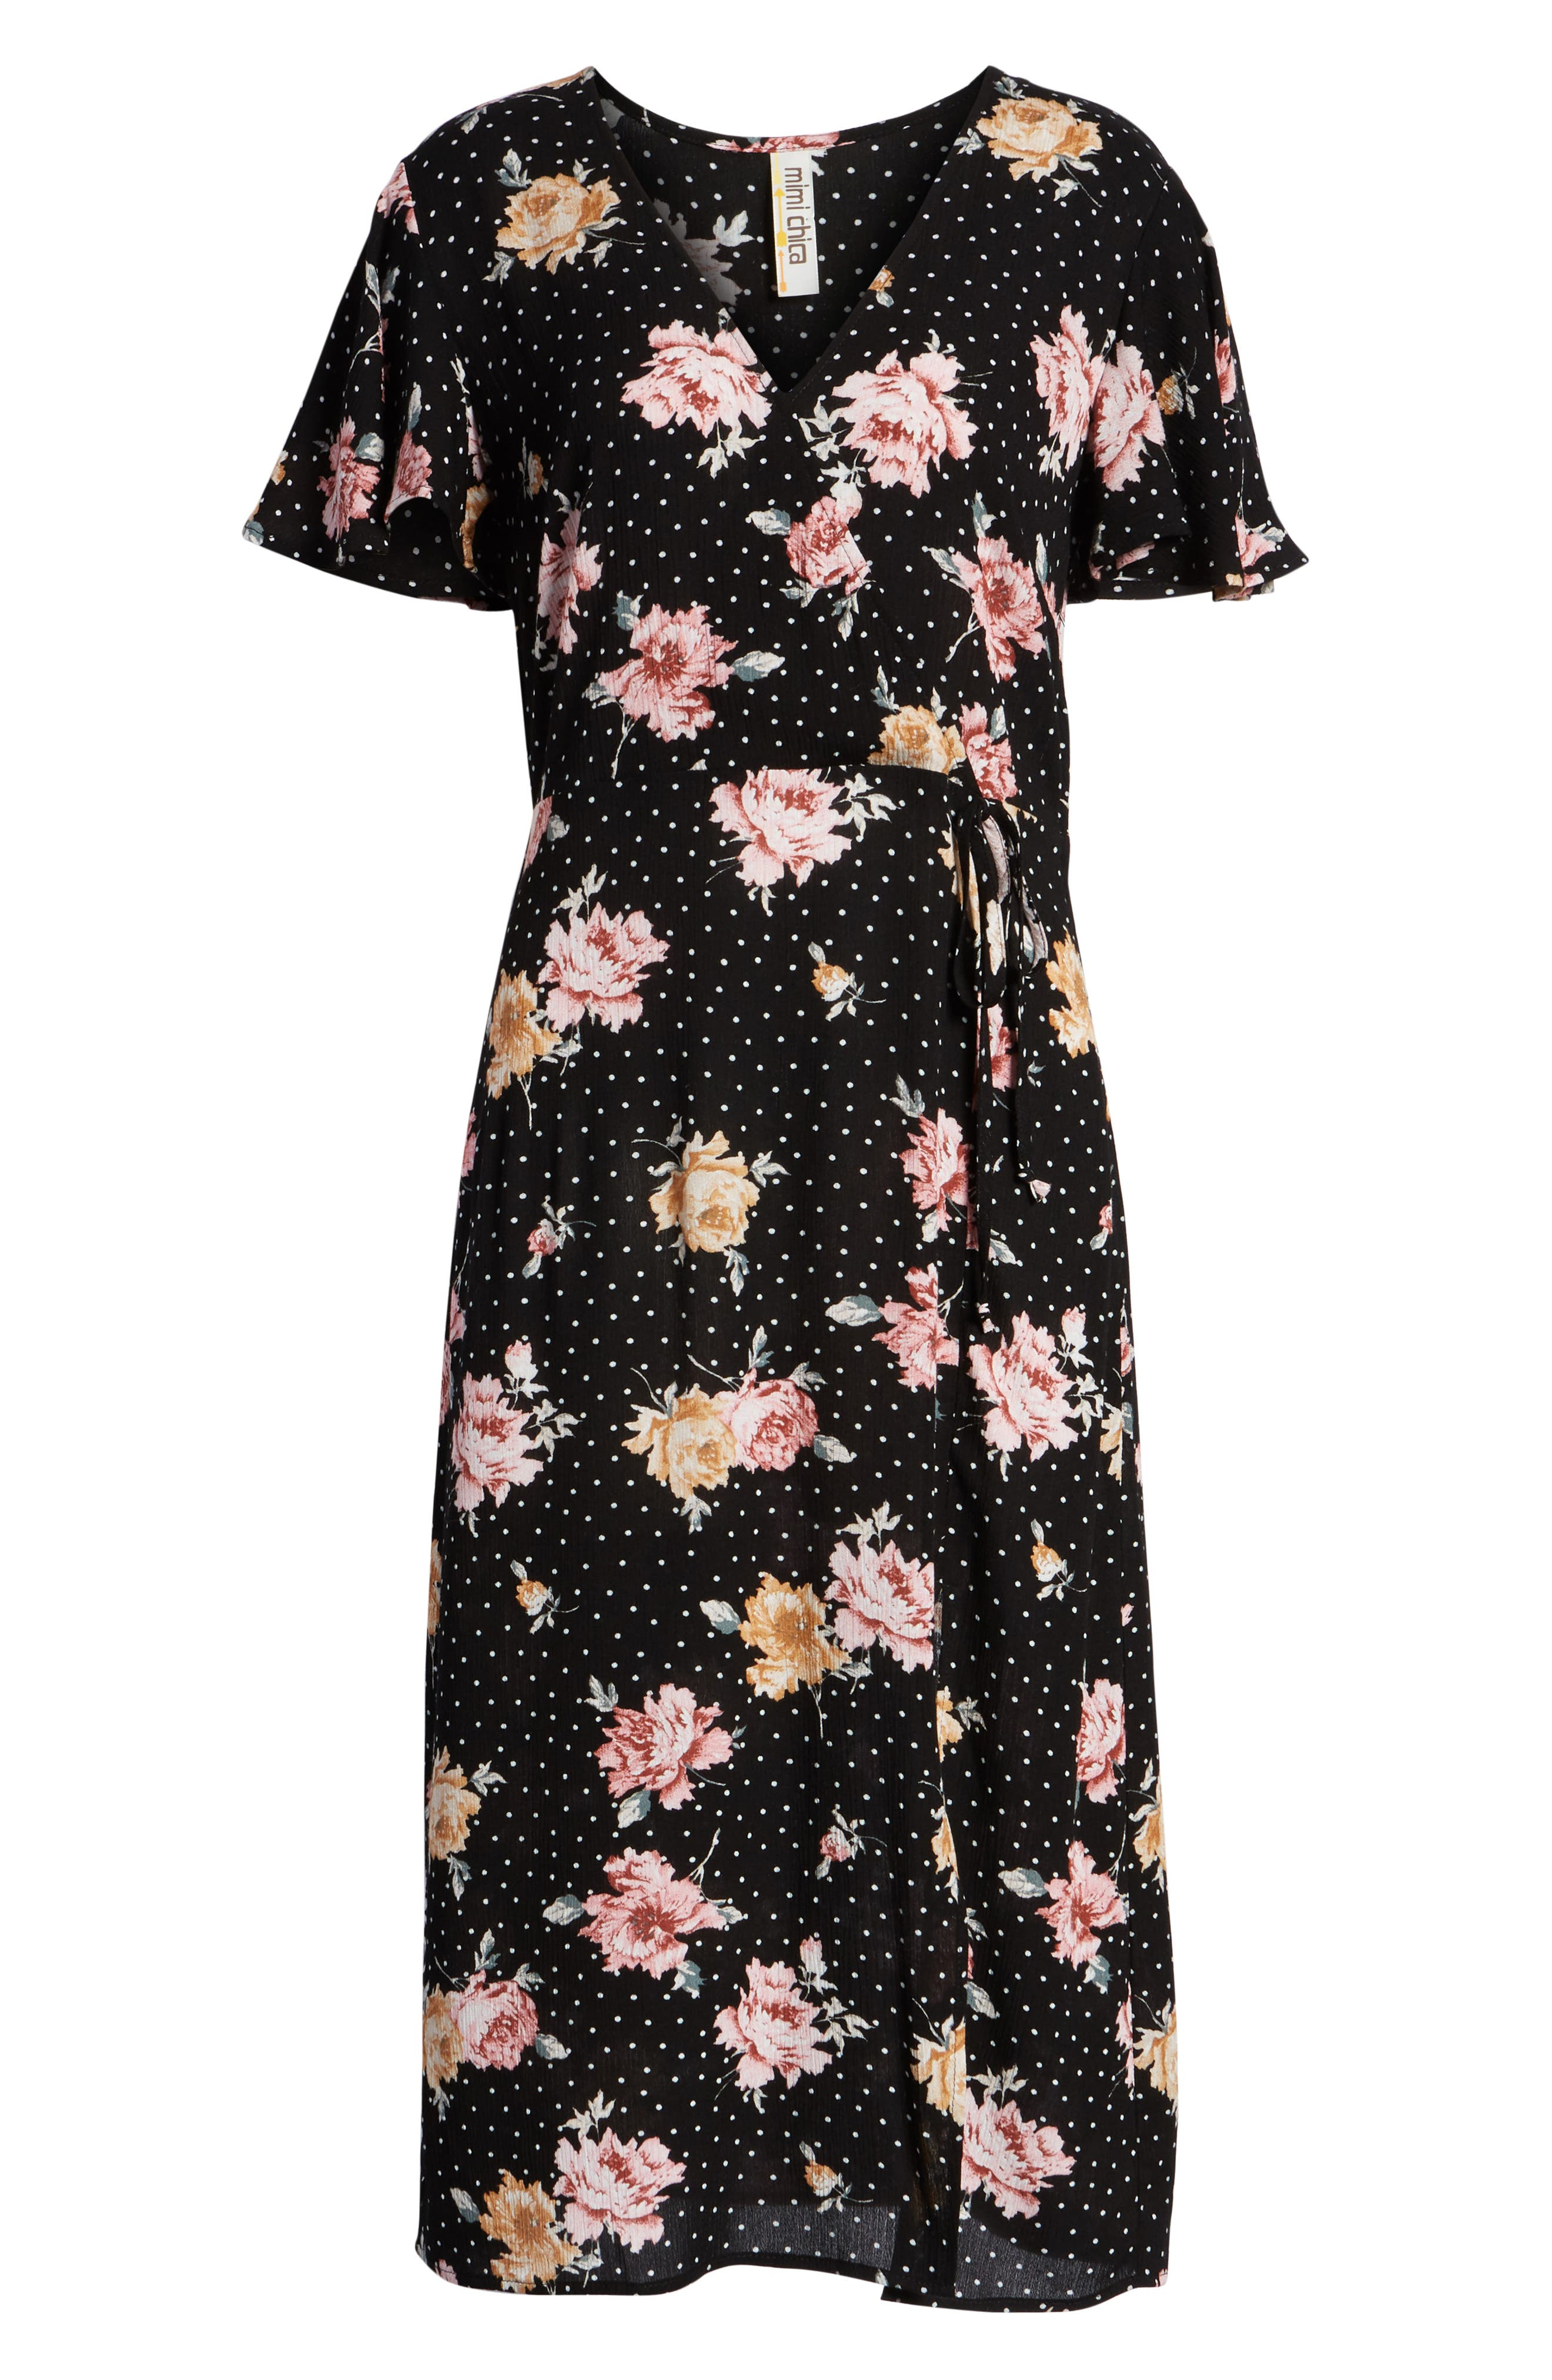 Print Tie Front Dress,                             Alternate thumbnail 7, color,                             BLACK FLORAL